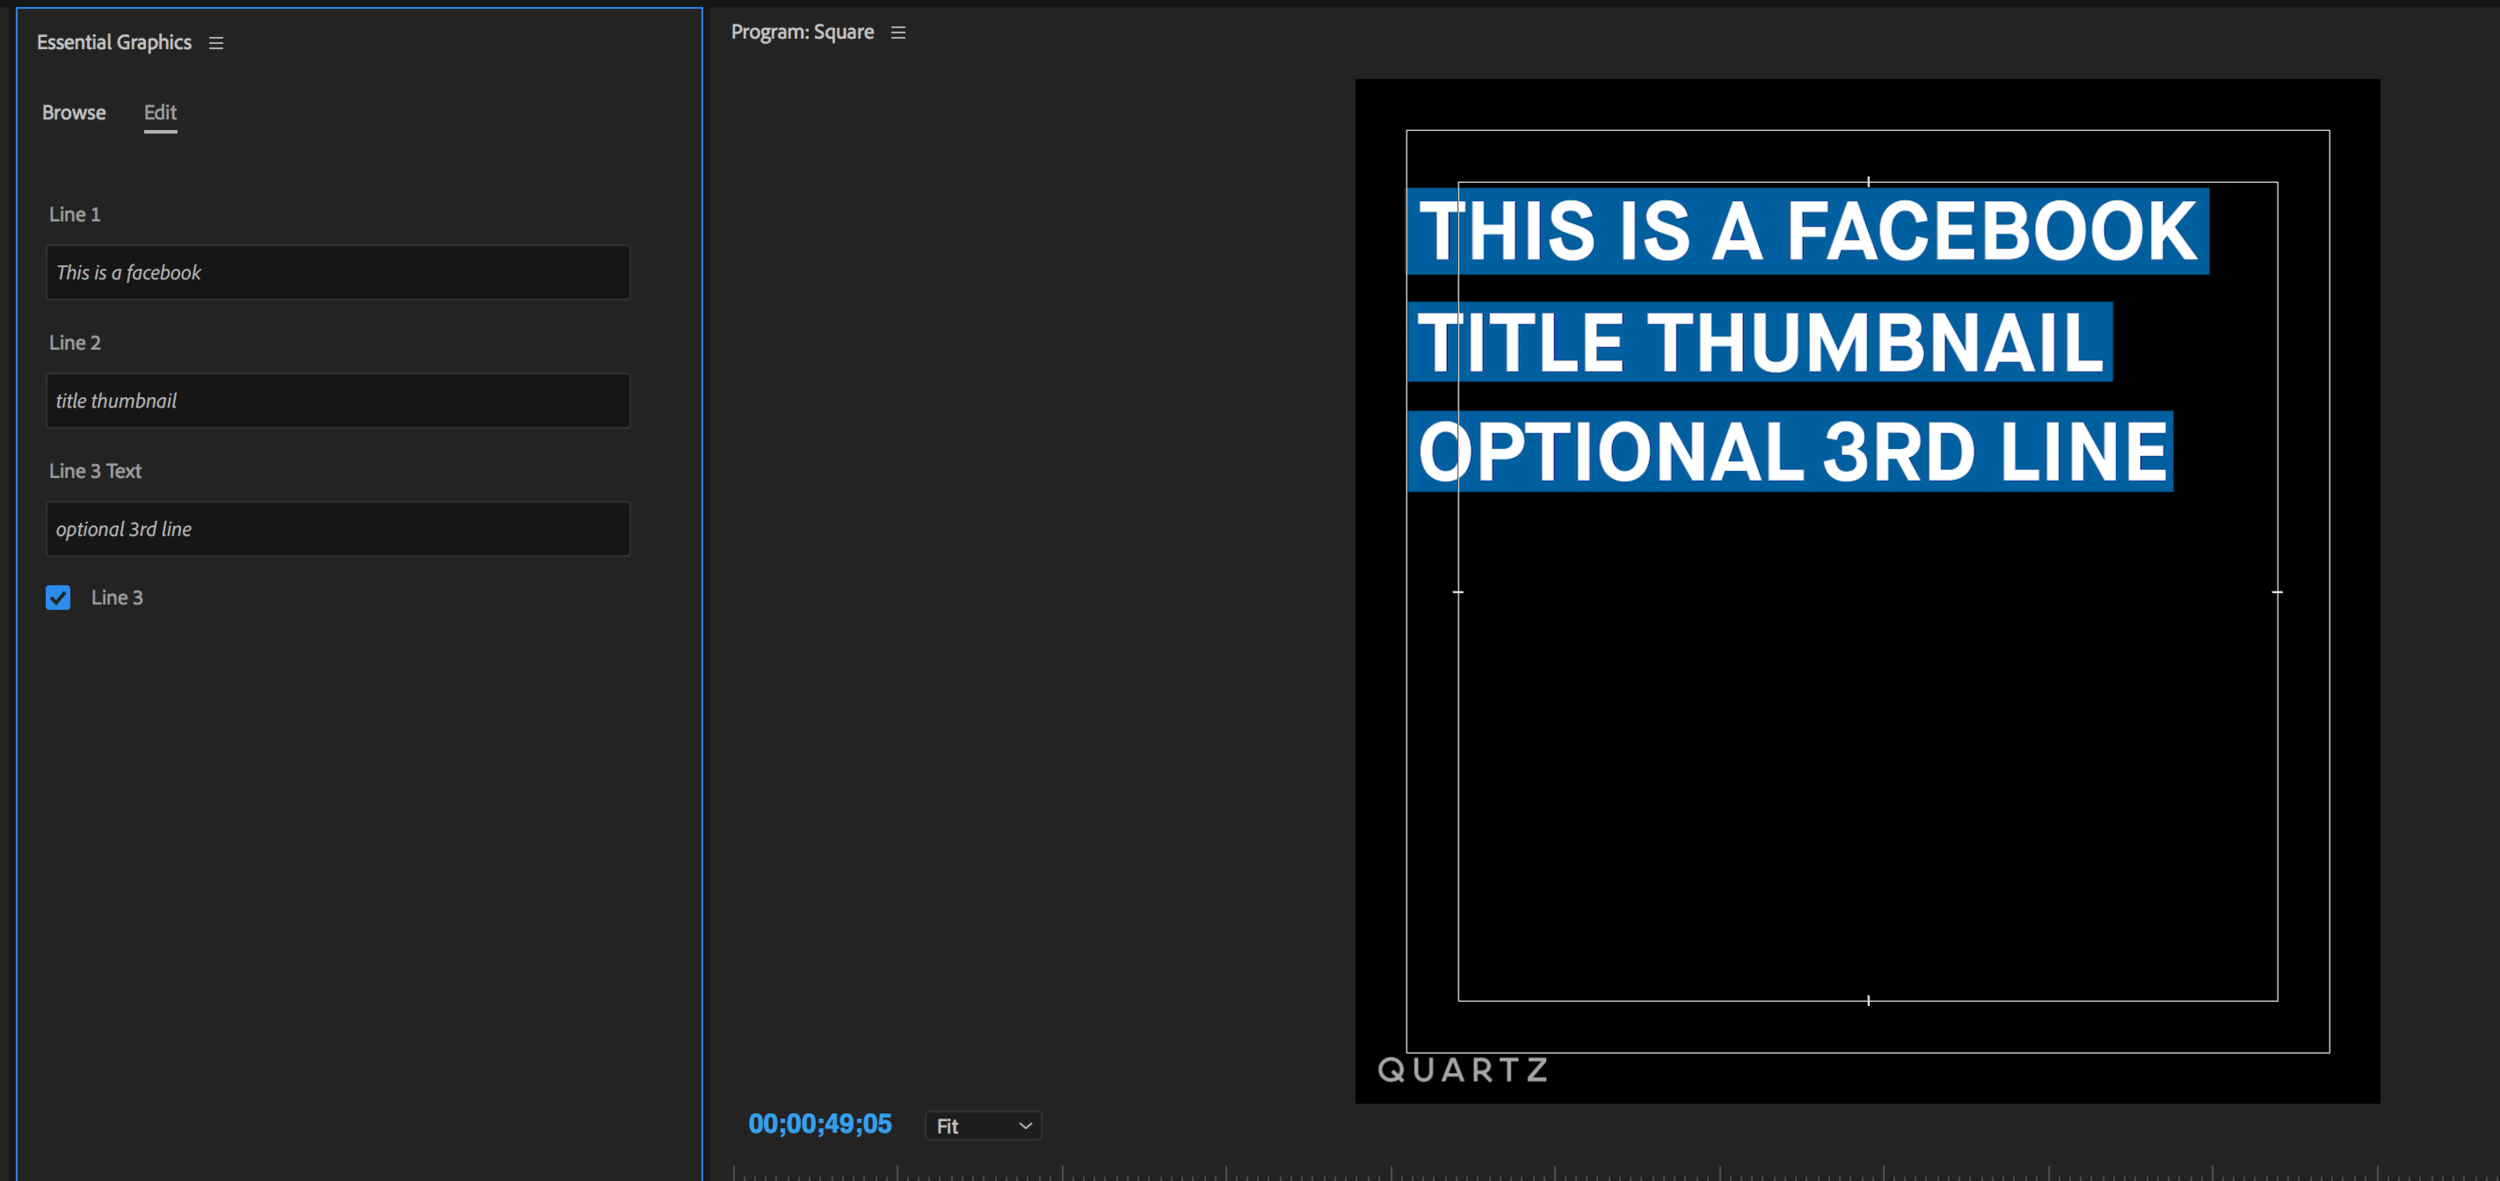 You can check the box to create a 3rd line and the blue bars automatically resize to fit the text editors type in.